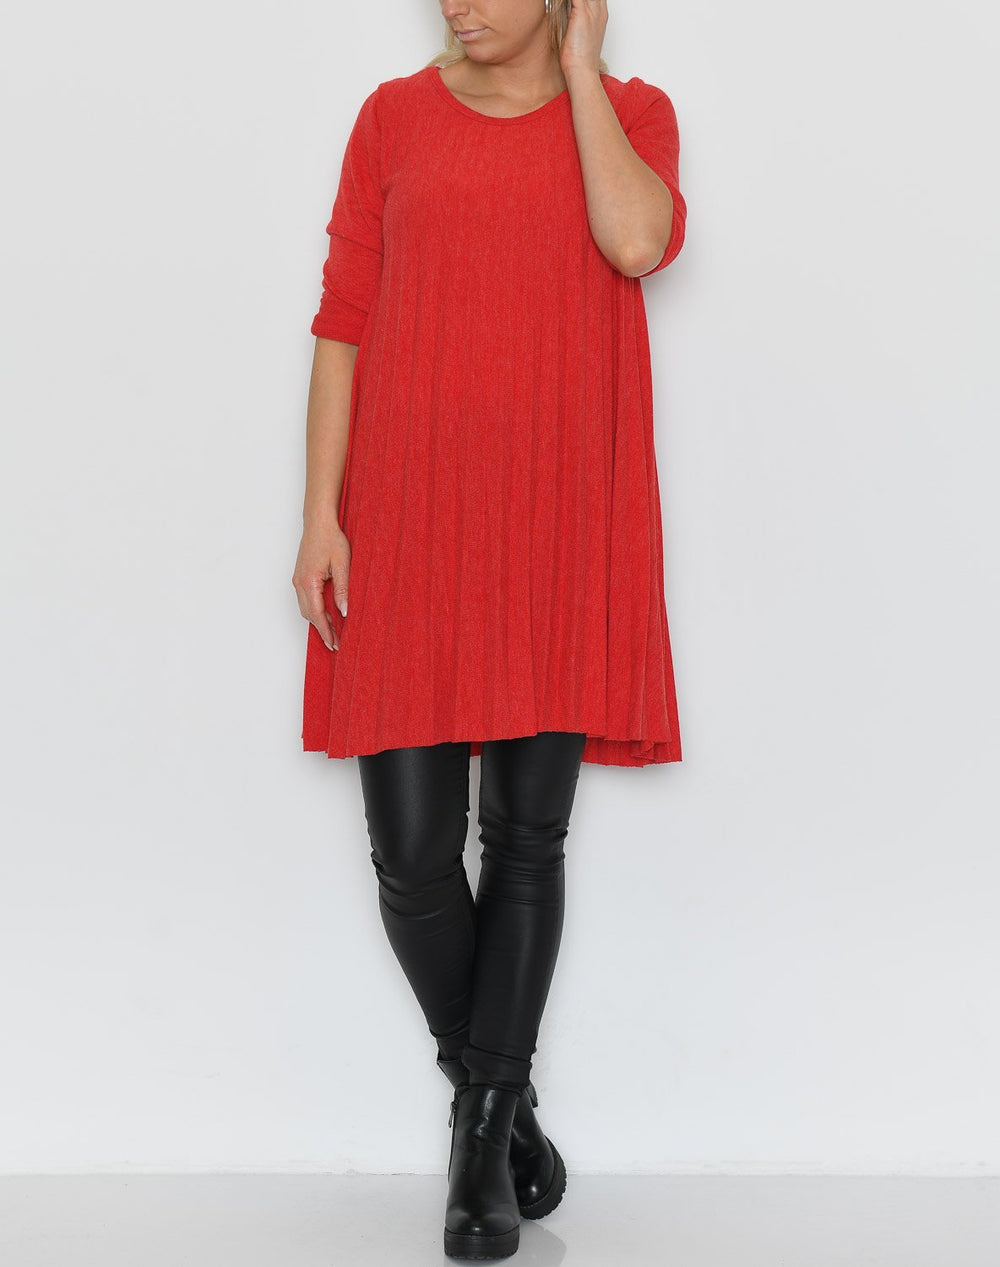 Louise dress red - Online-Mode